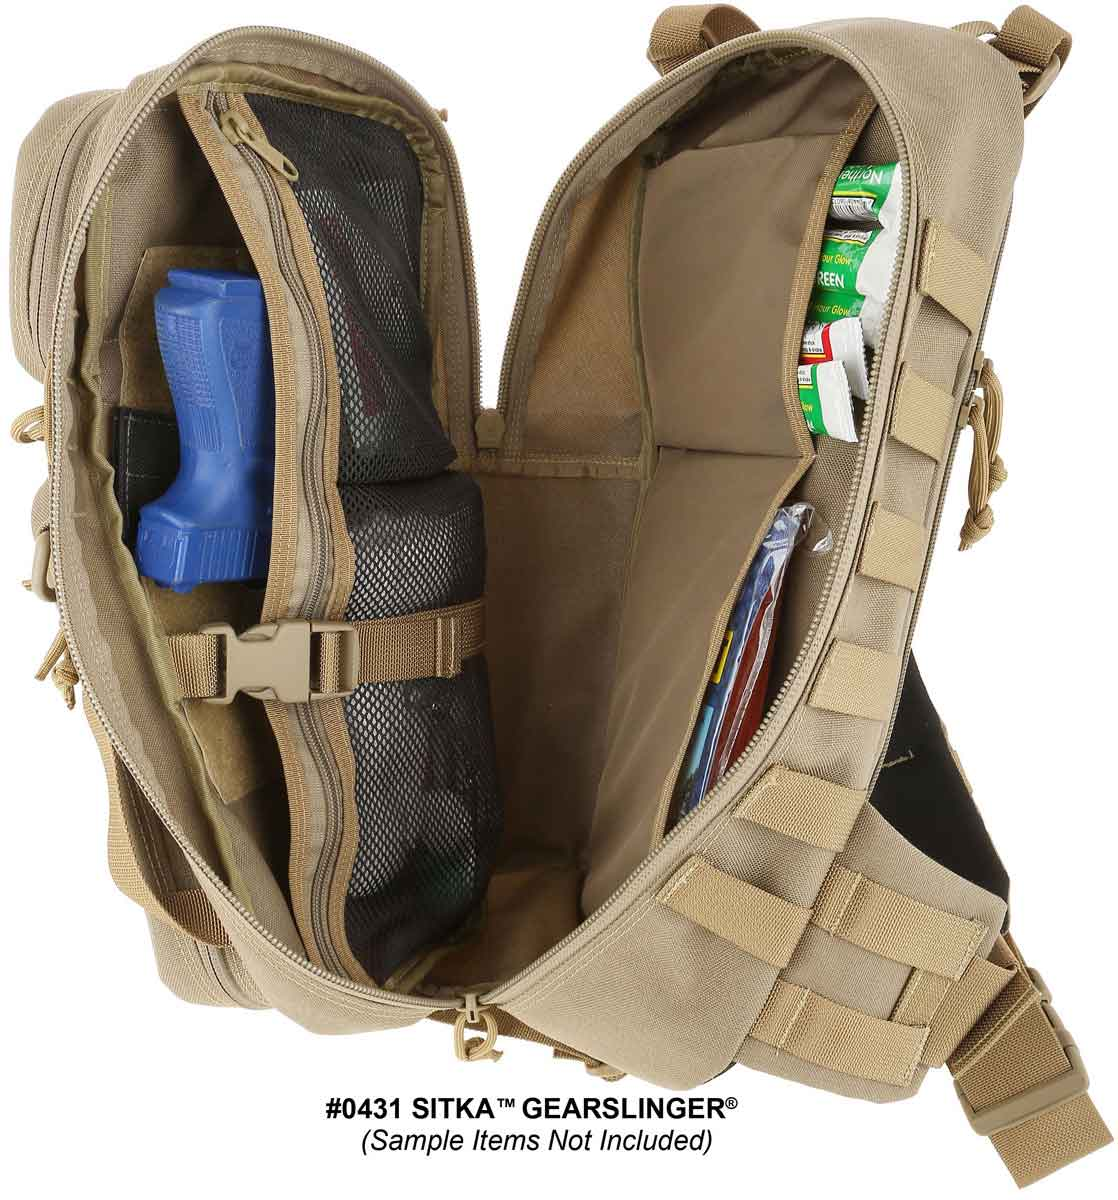 Main compartment's zipper allows full clamshell opening.